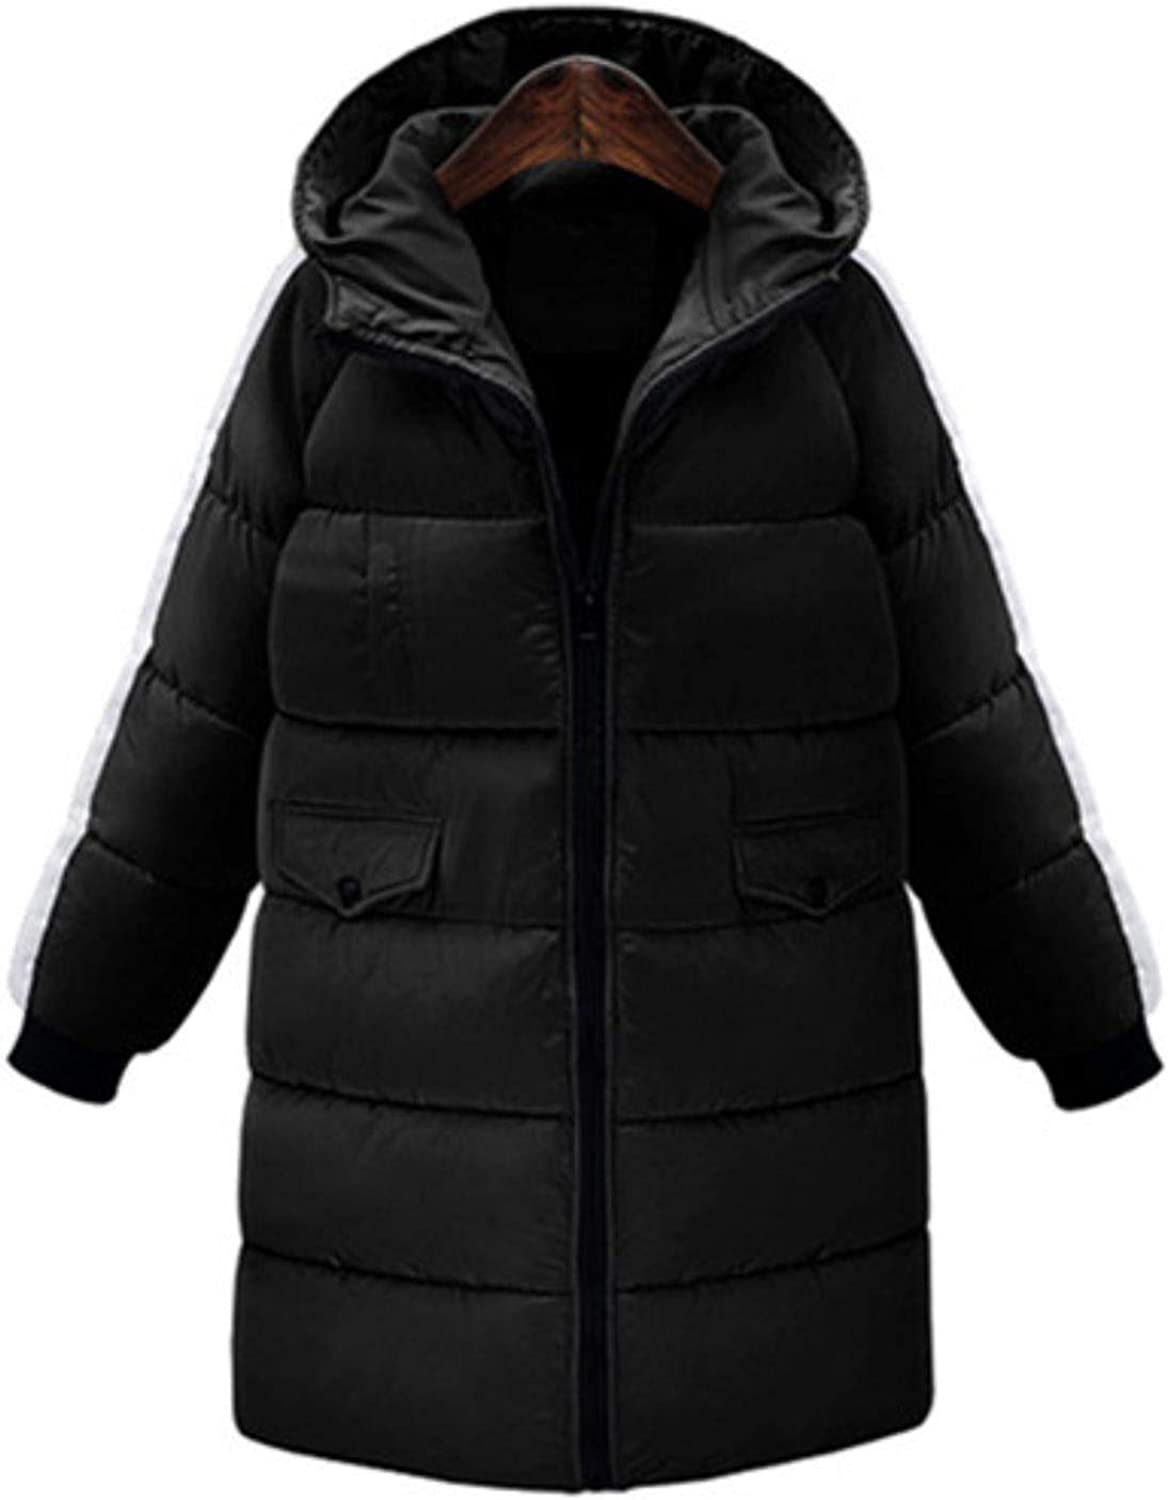 CHANGYUGE Winter Long Jacket Women Hooded Parkas Padded Coats